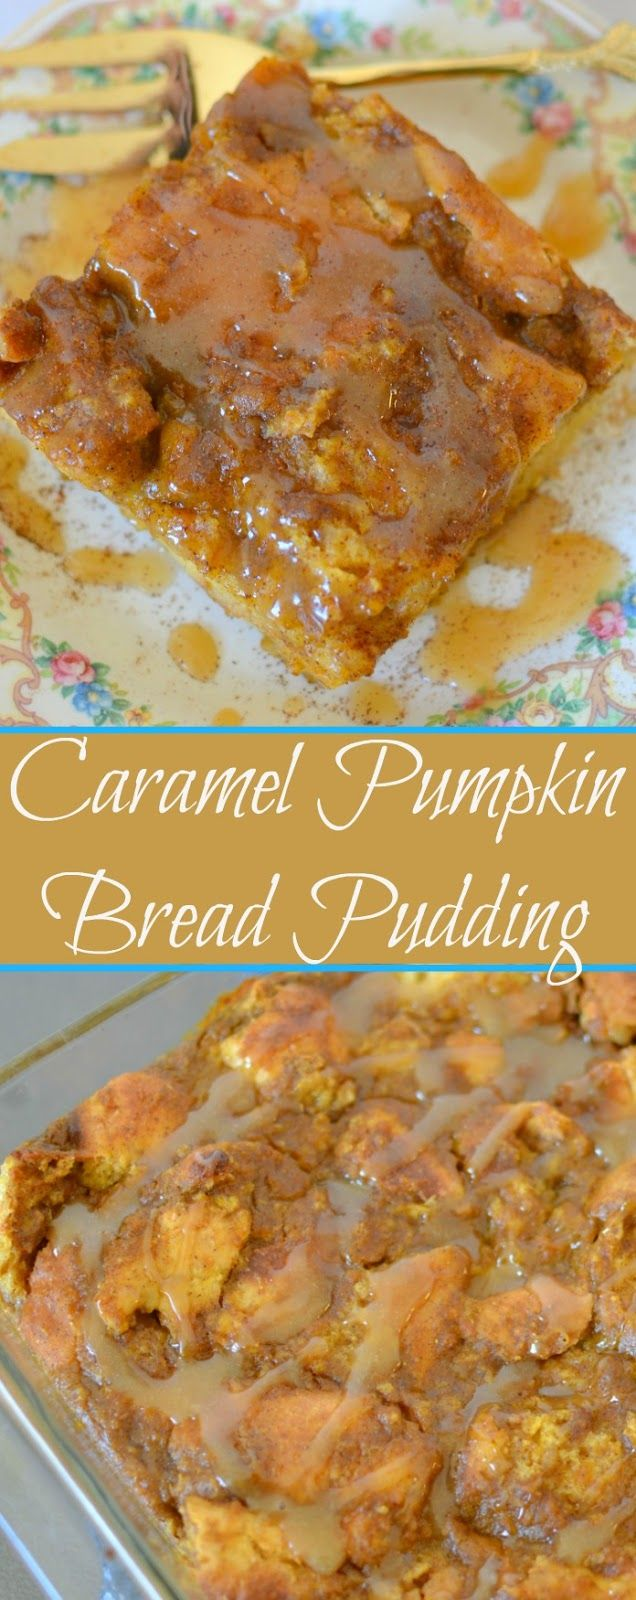 Caramel Pumpkin Bread Pudding Recipe